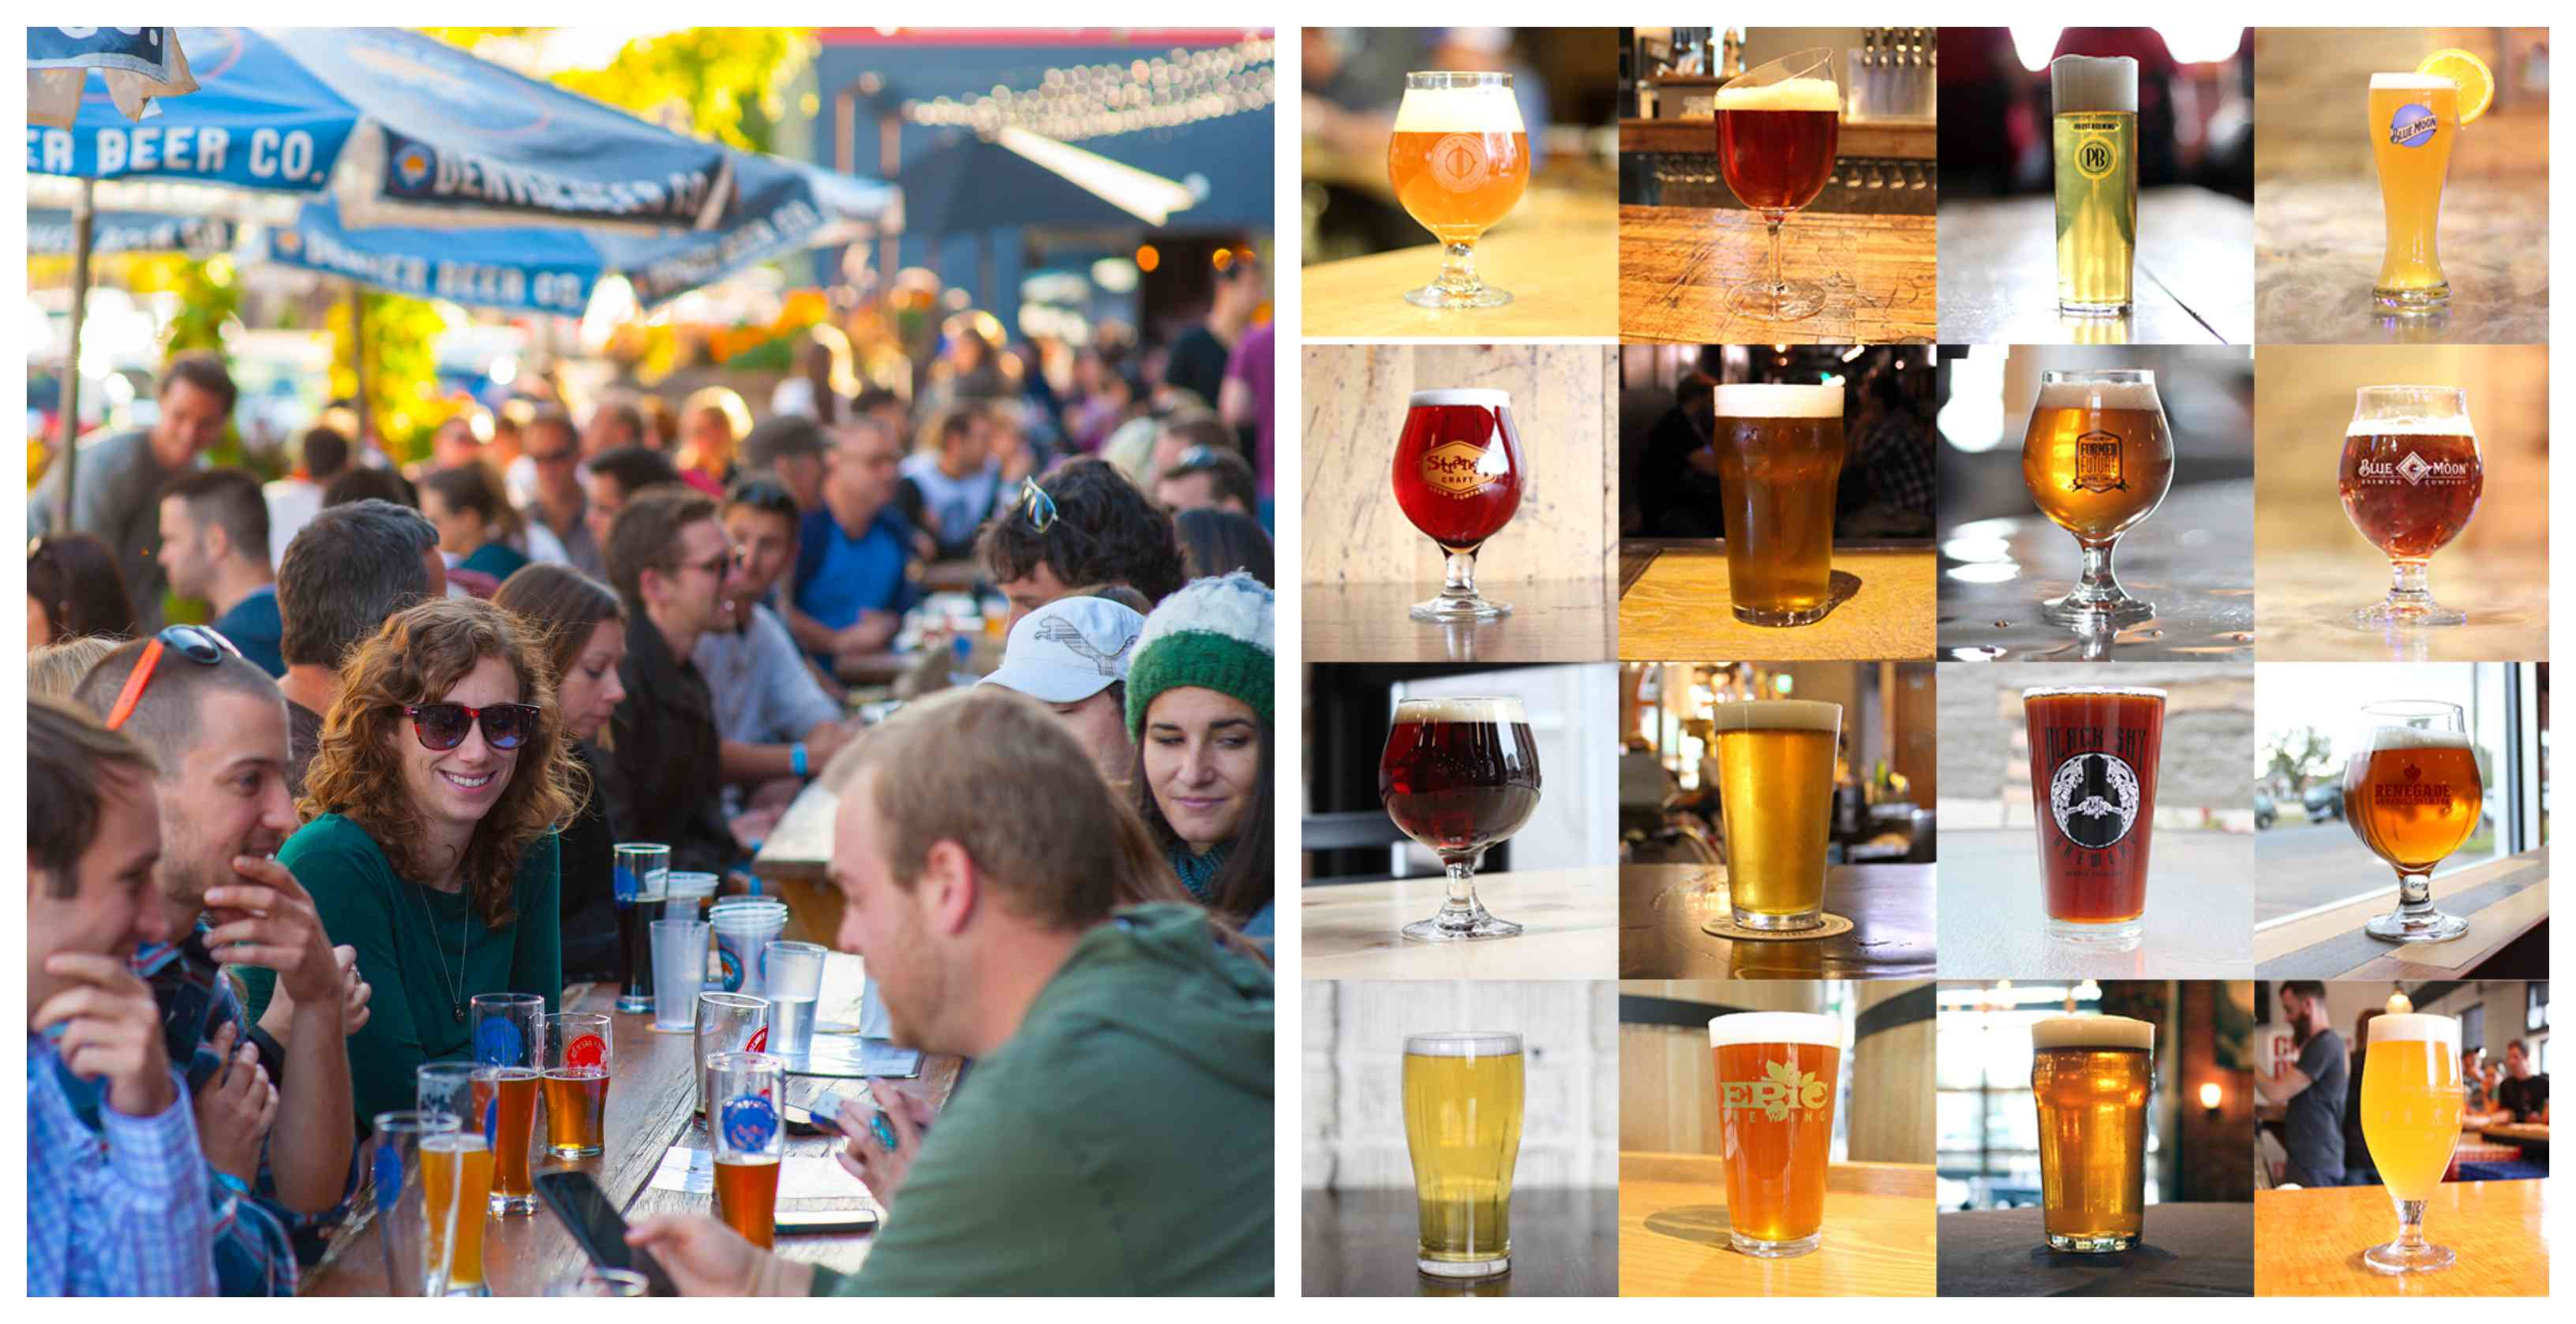 Denver Craft beer scene trail